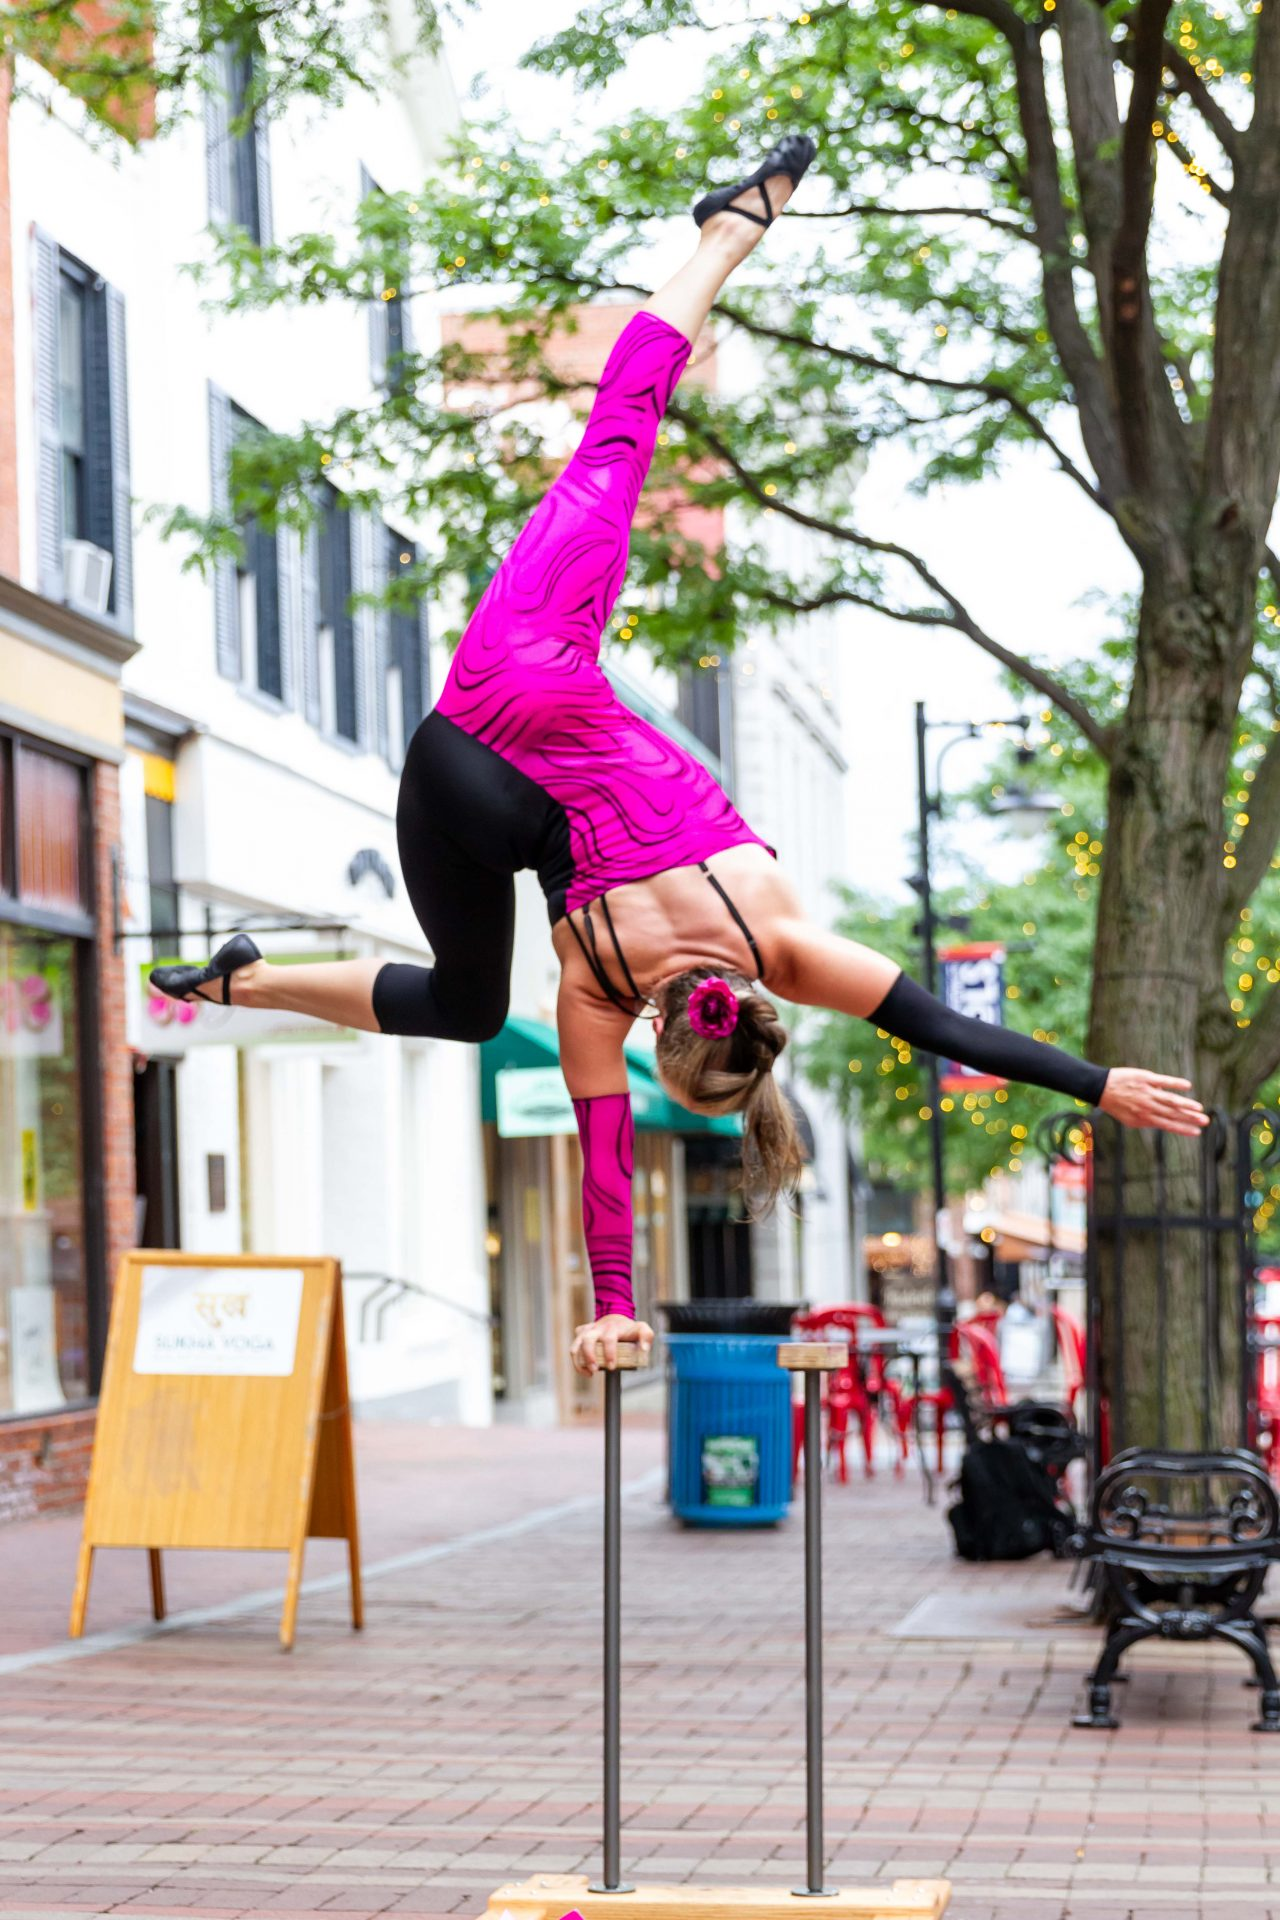 Megan Gendell in a one-arm handstand busking